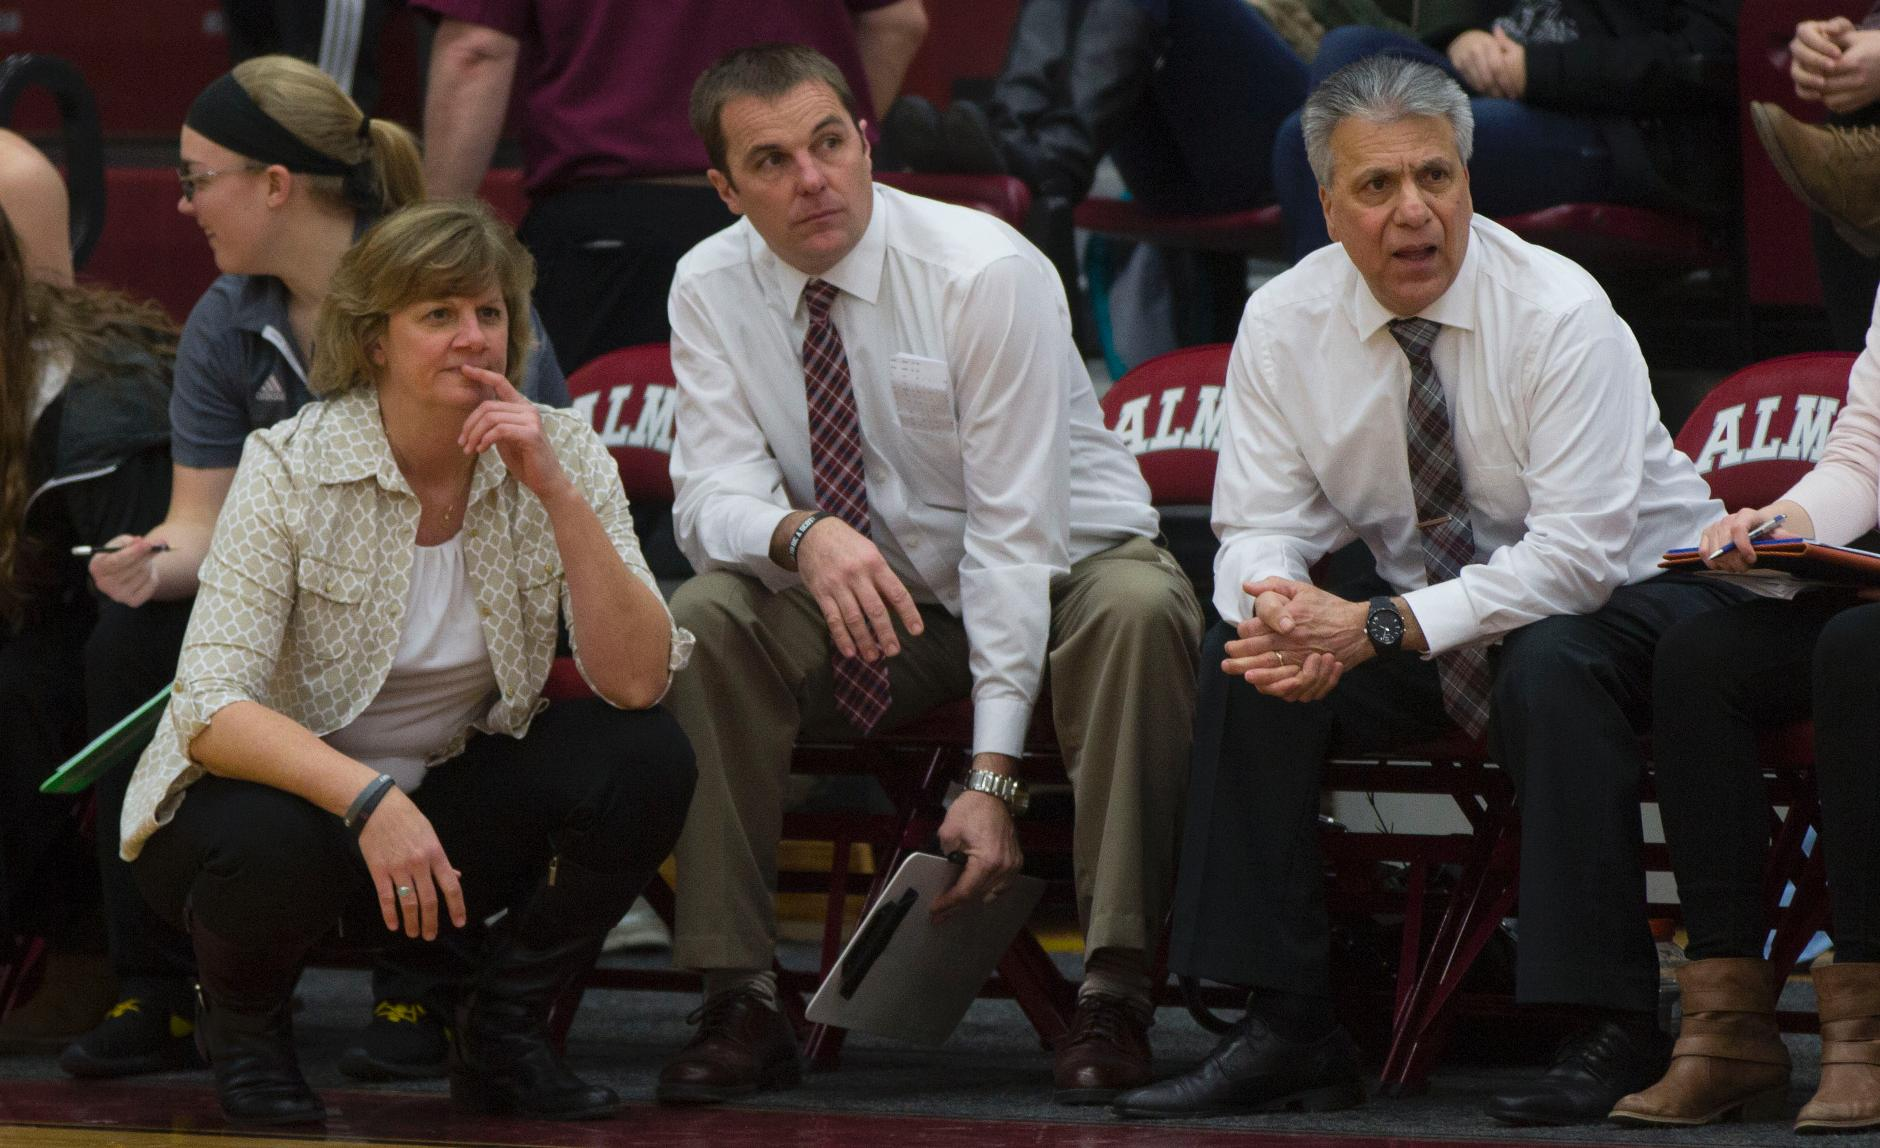 Incoming class for women's basketball team announced